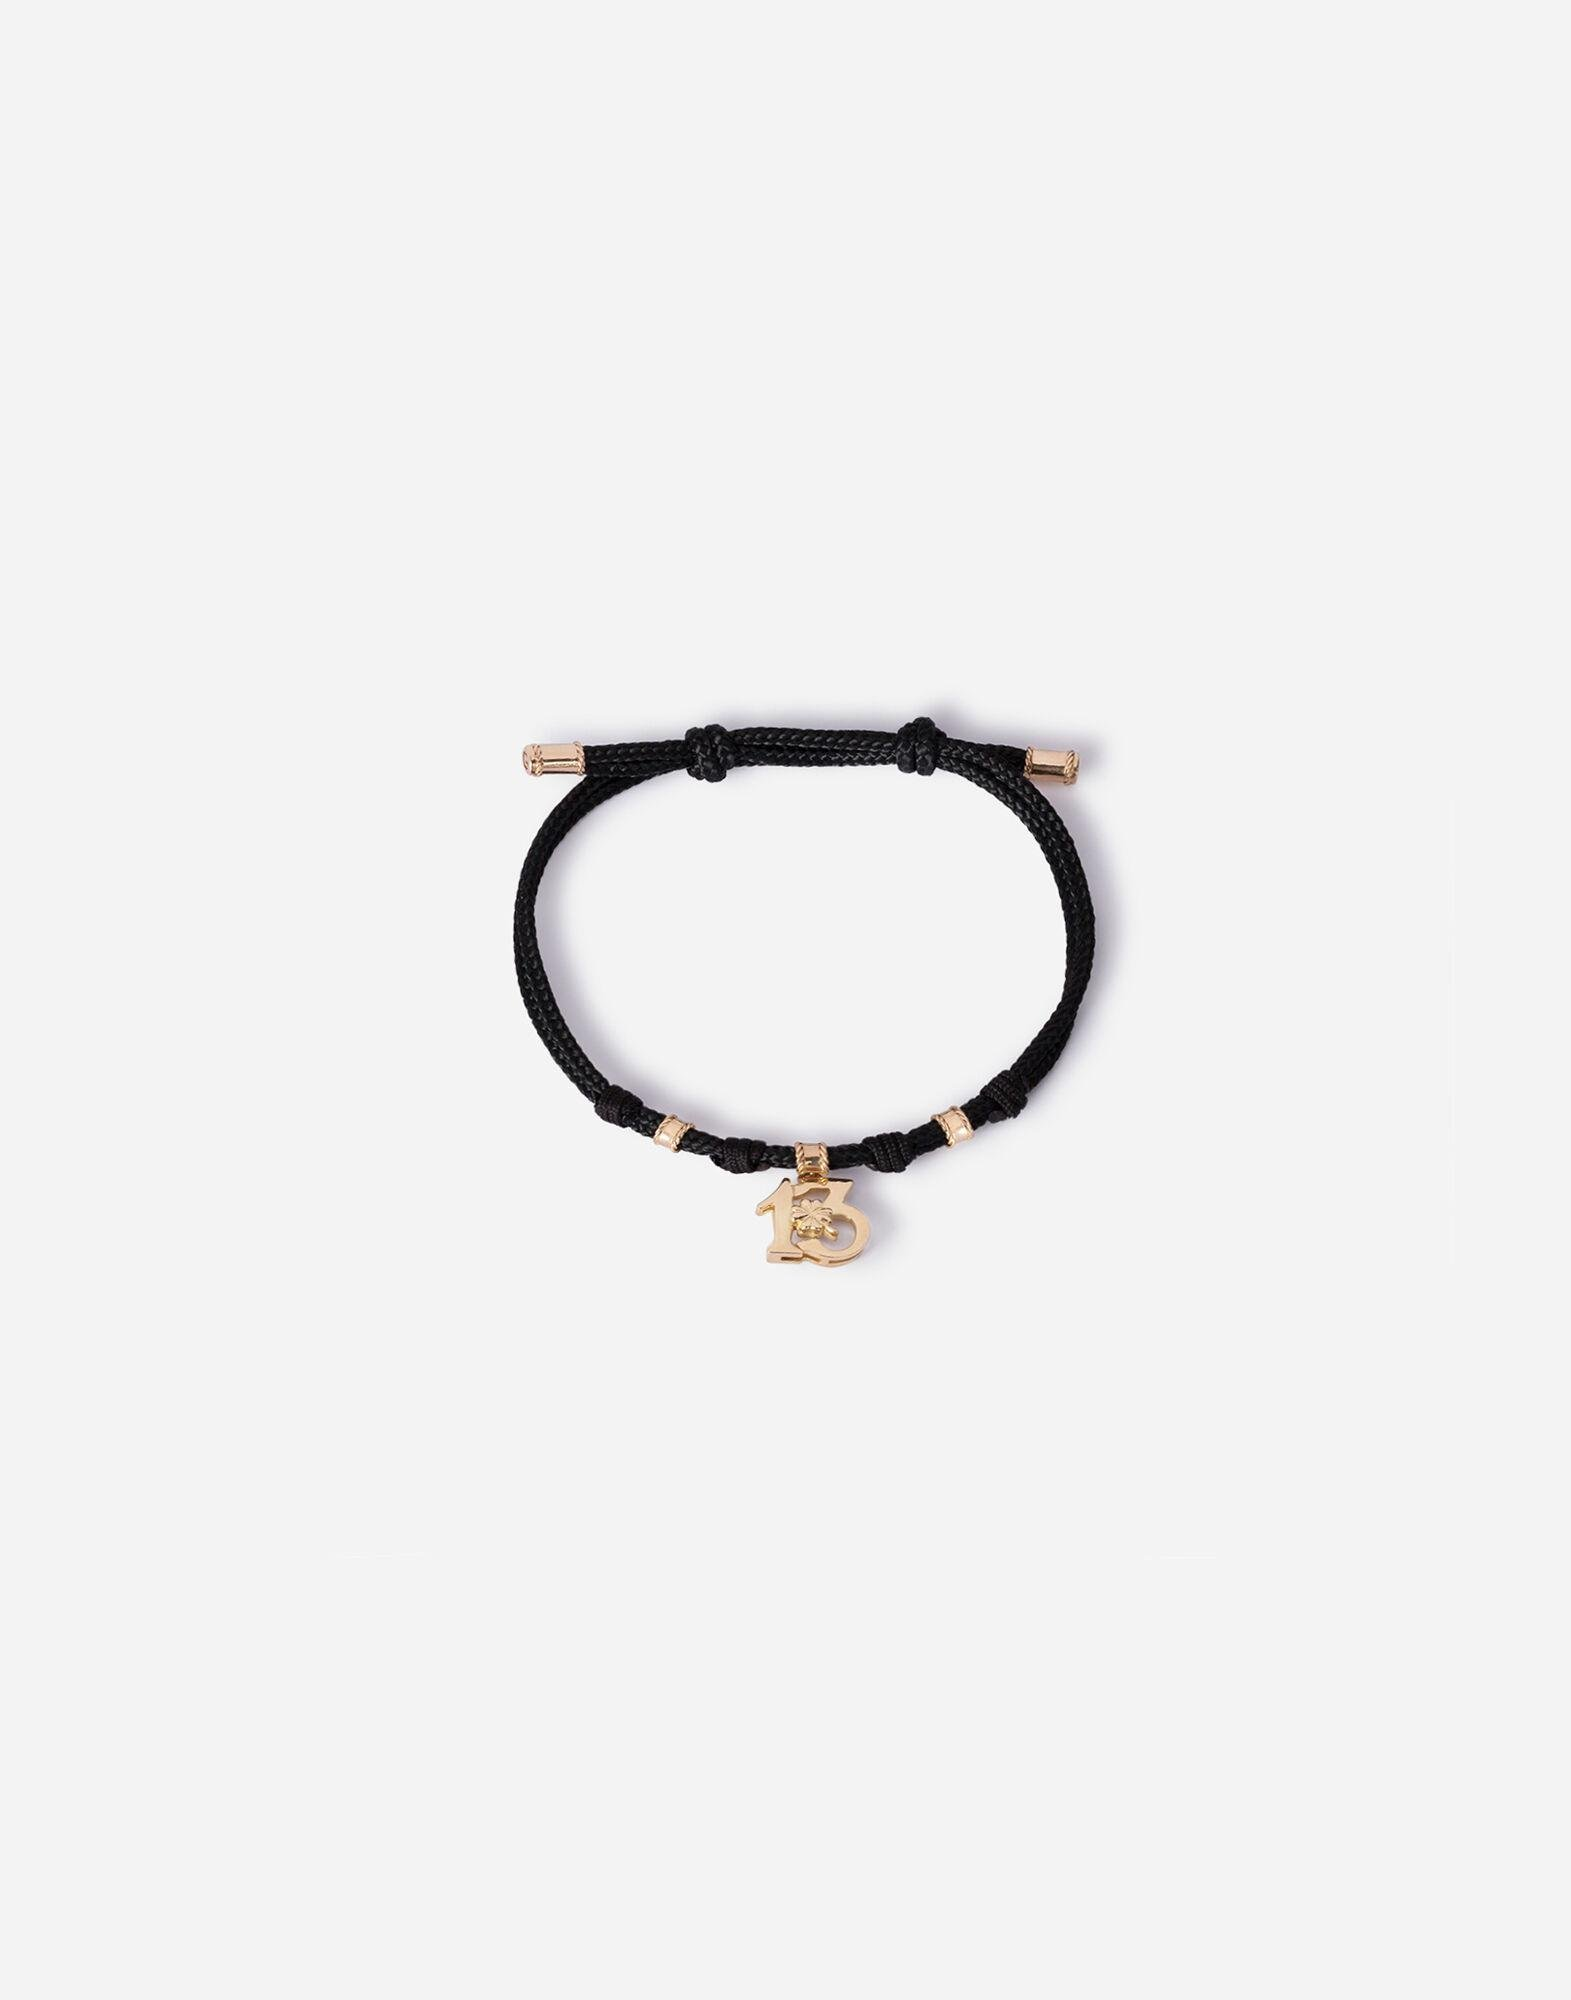 Fabric Good luck bracelet with yellow gold pendant charm